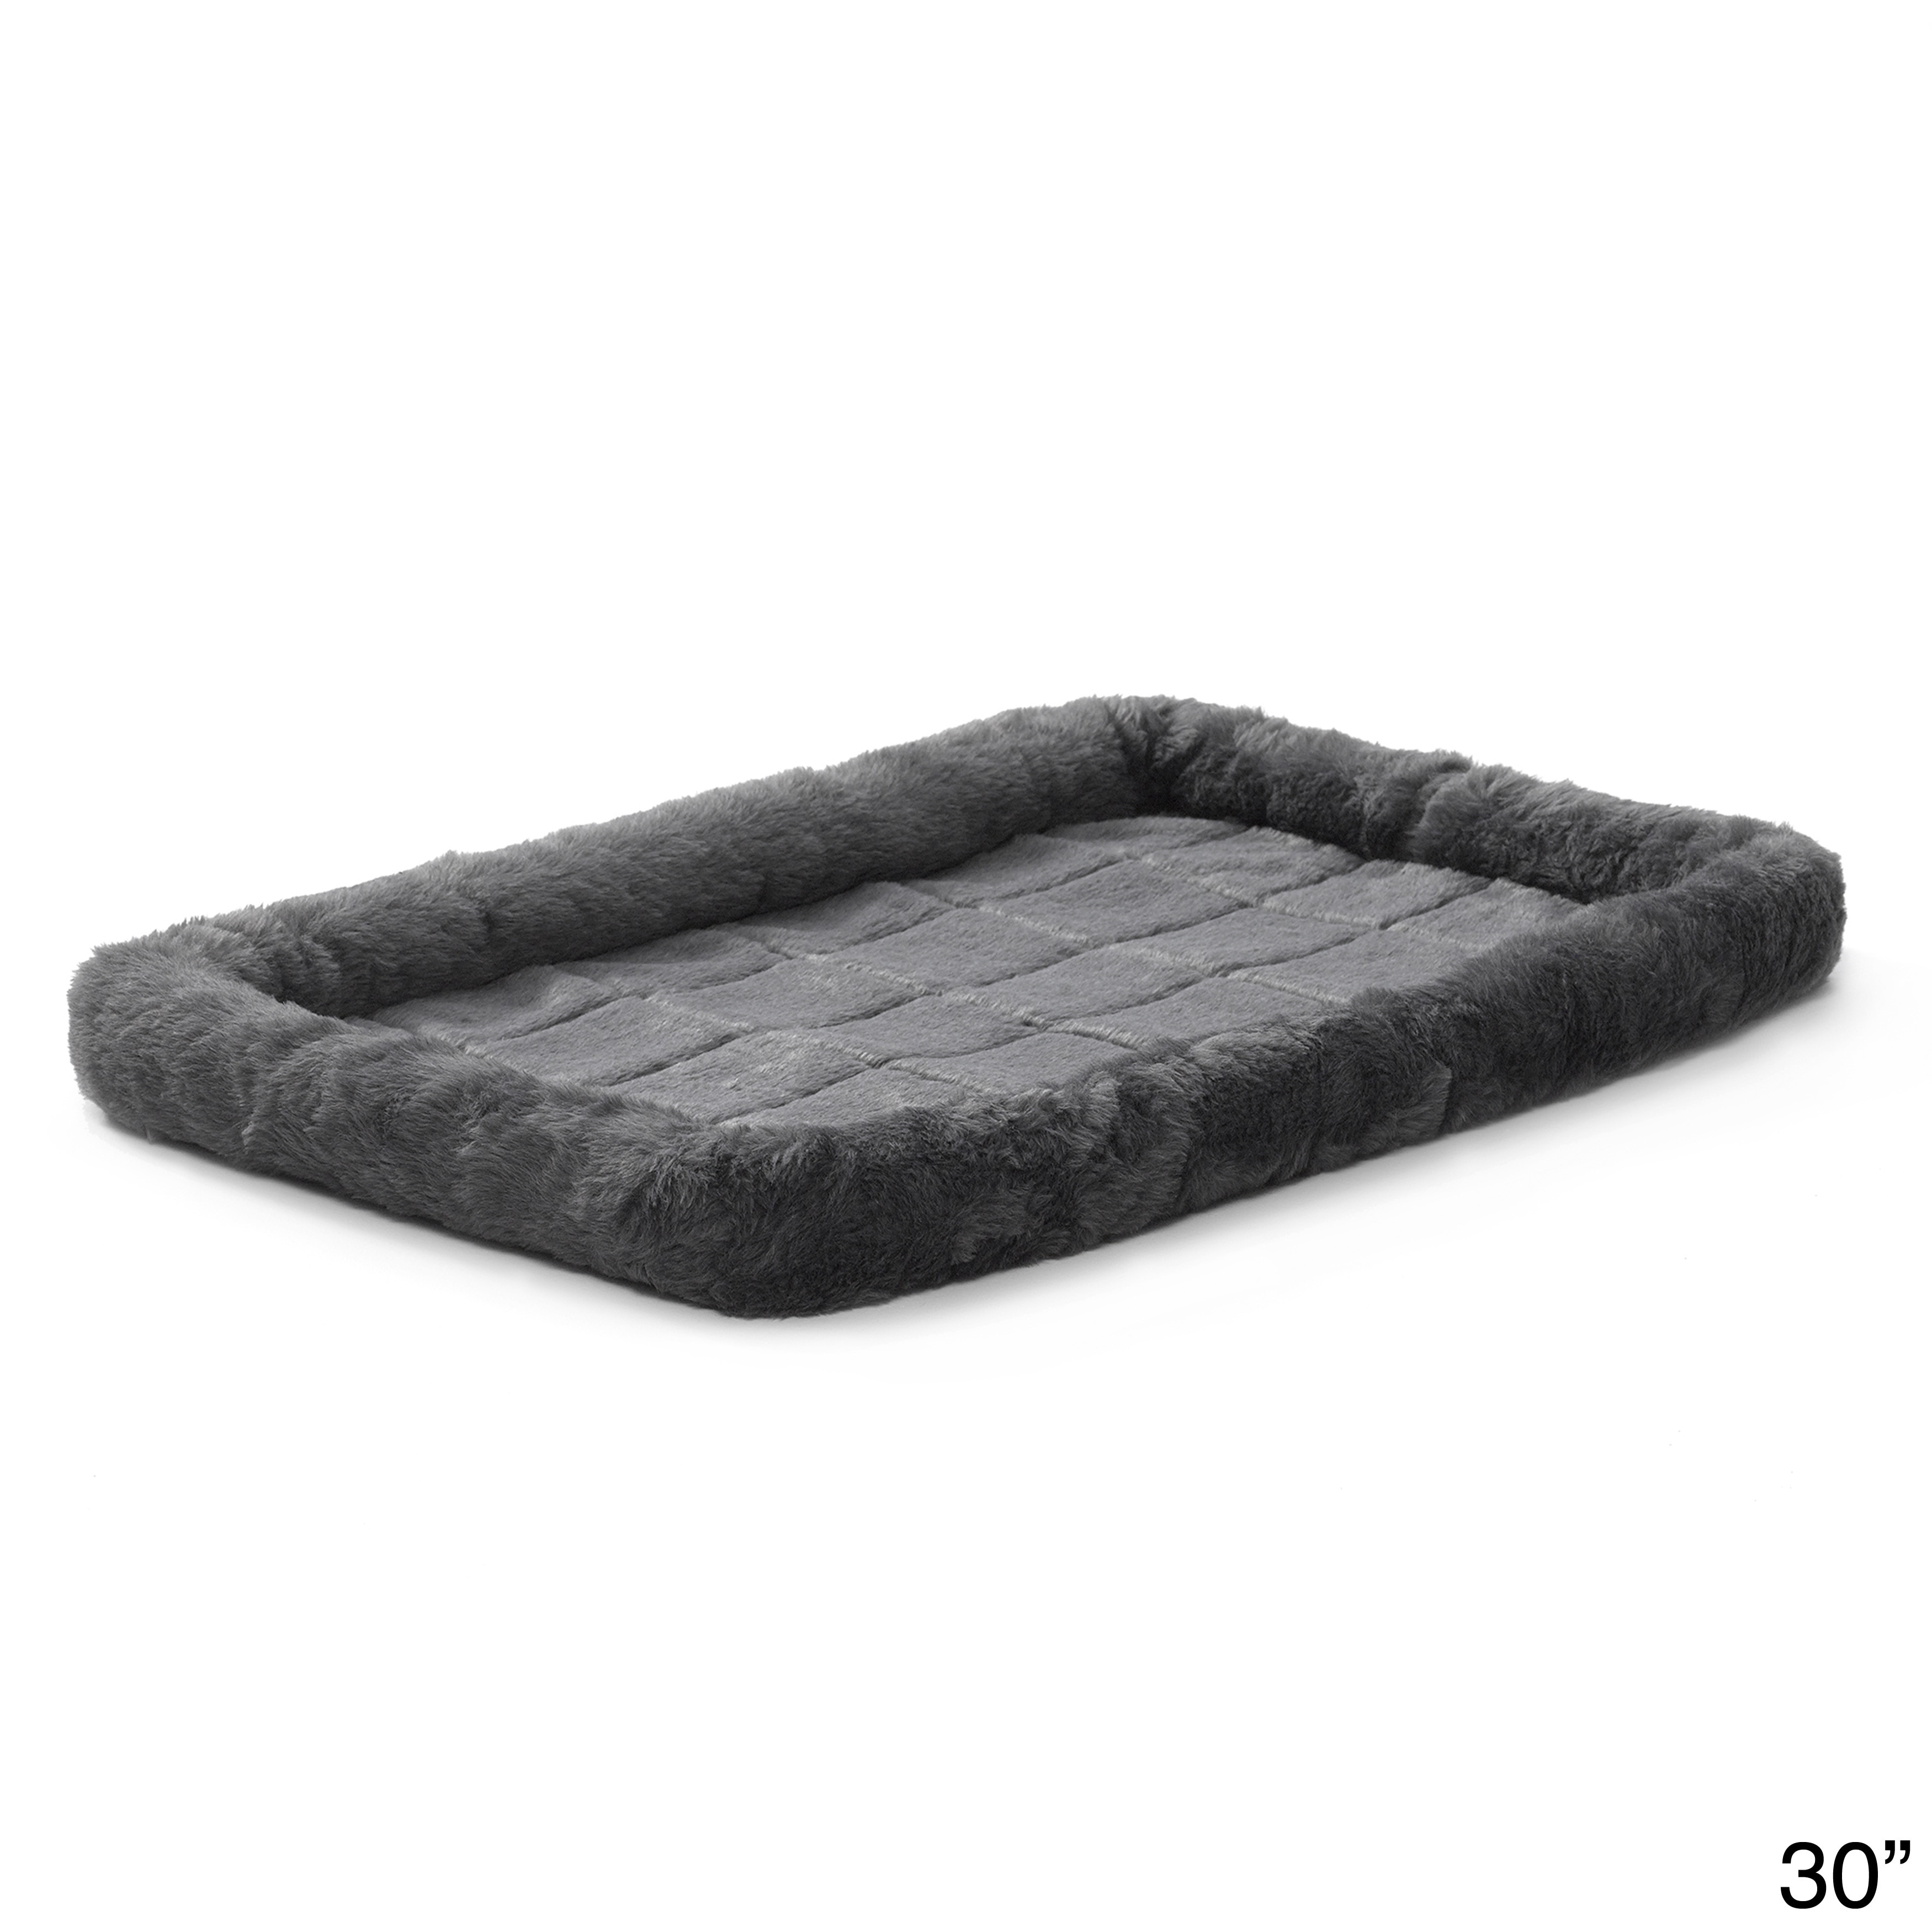 Midwest Quiet Time Bolstered Pet Bed (30), Grey, Size Medium